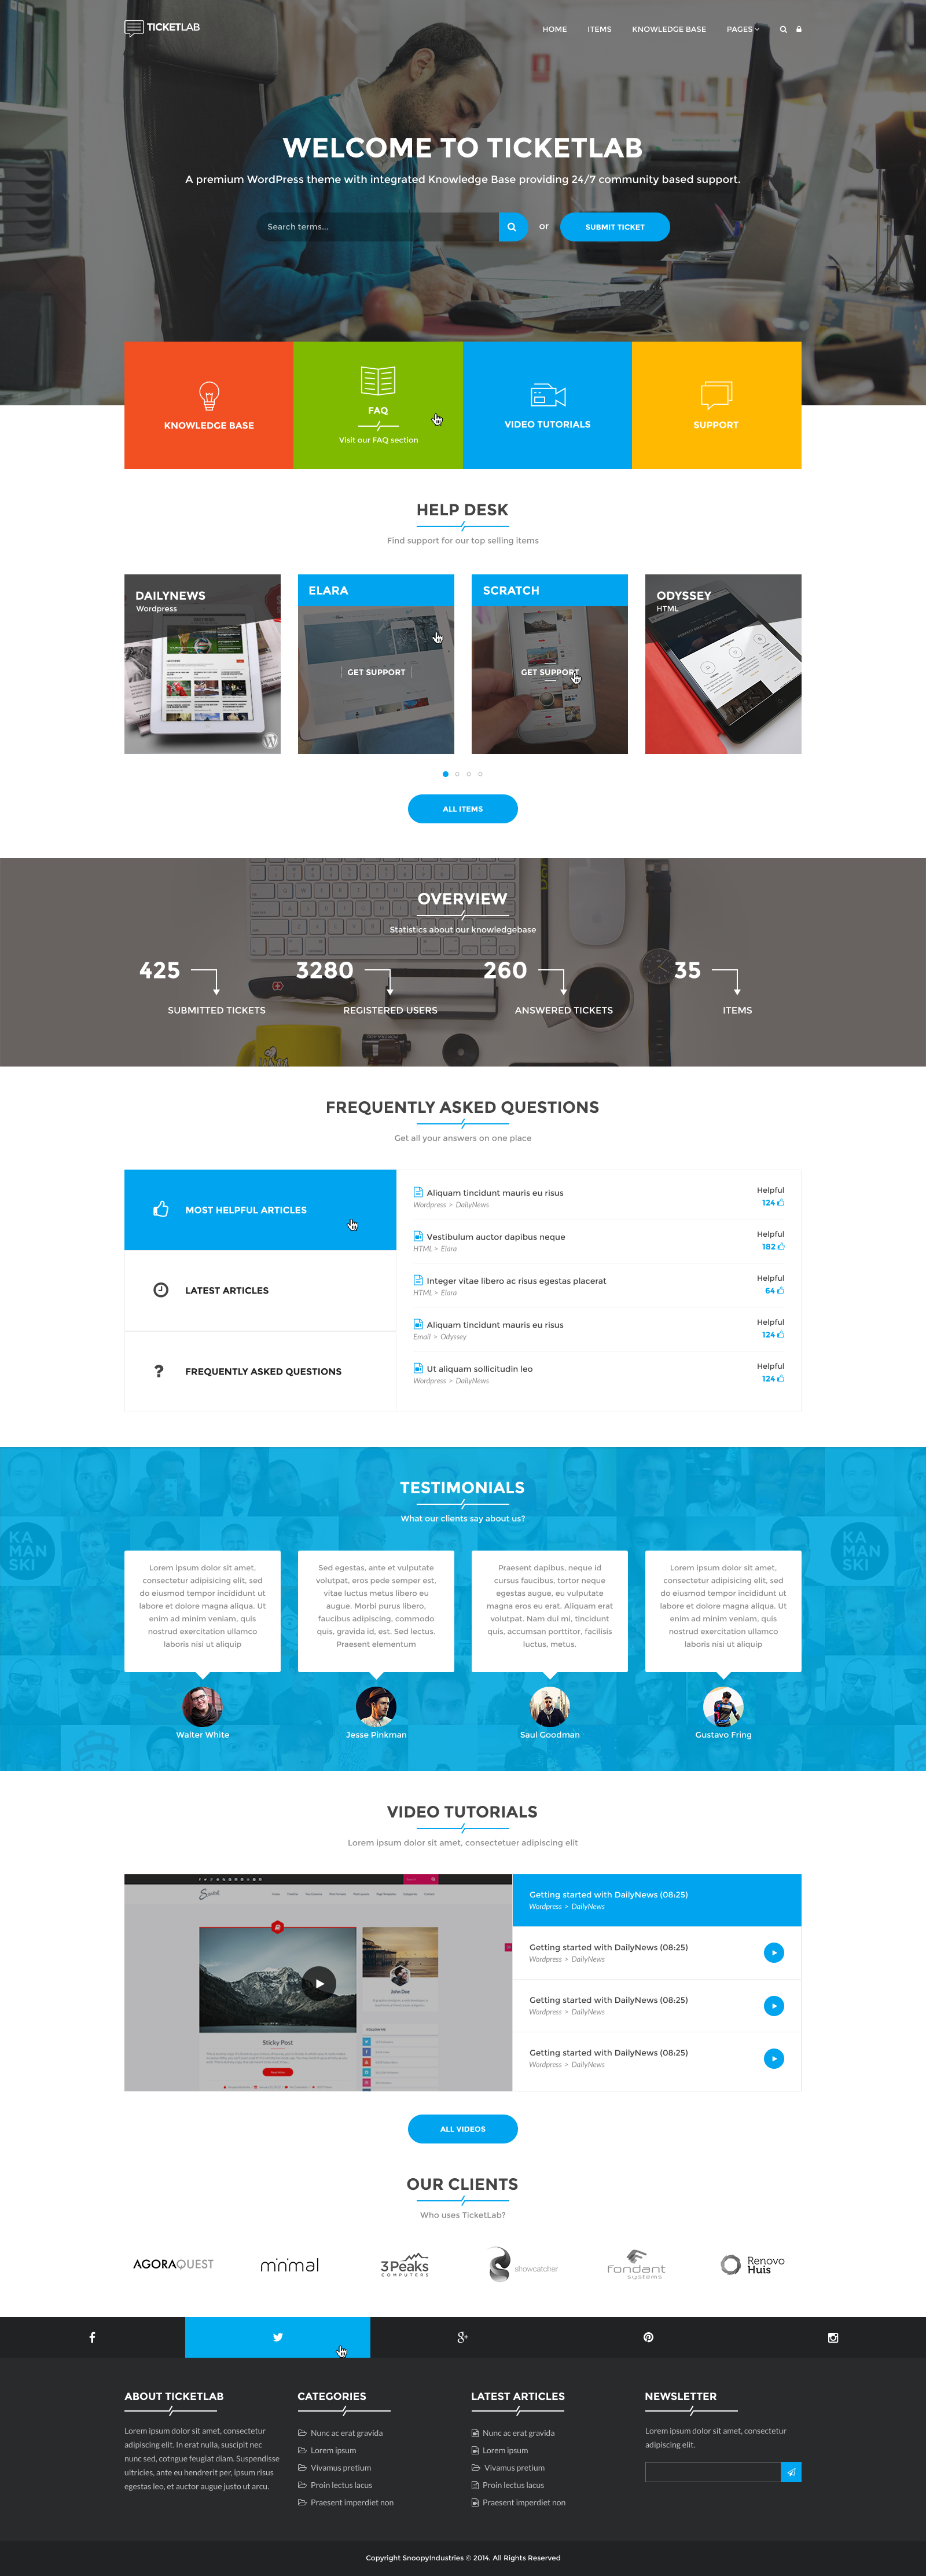 ticketlab helpdesk support and knowledge base psd template by bigbangthemes. Black Bedroom Furniture Sets. Home Design Ideas